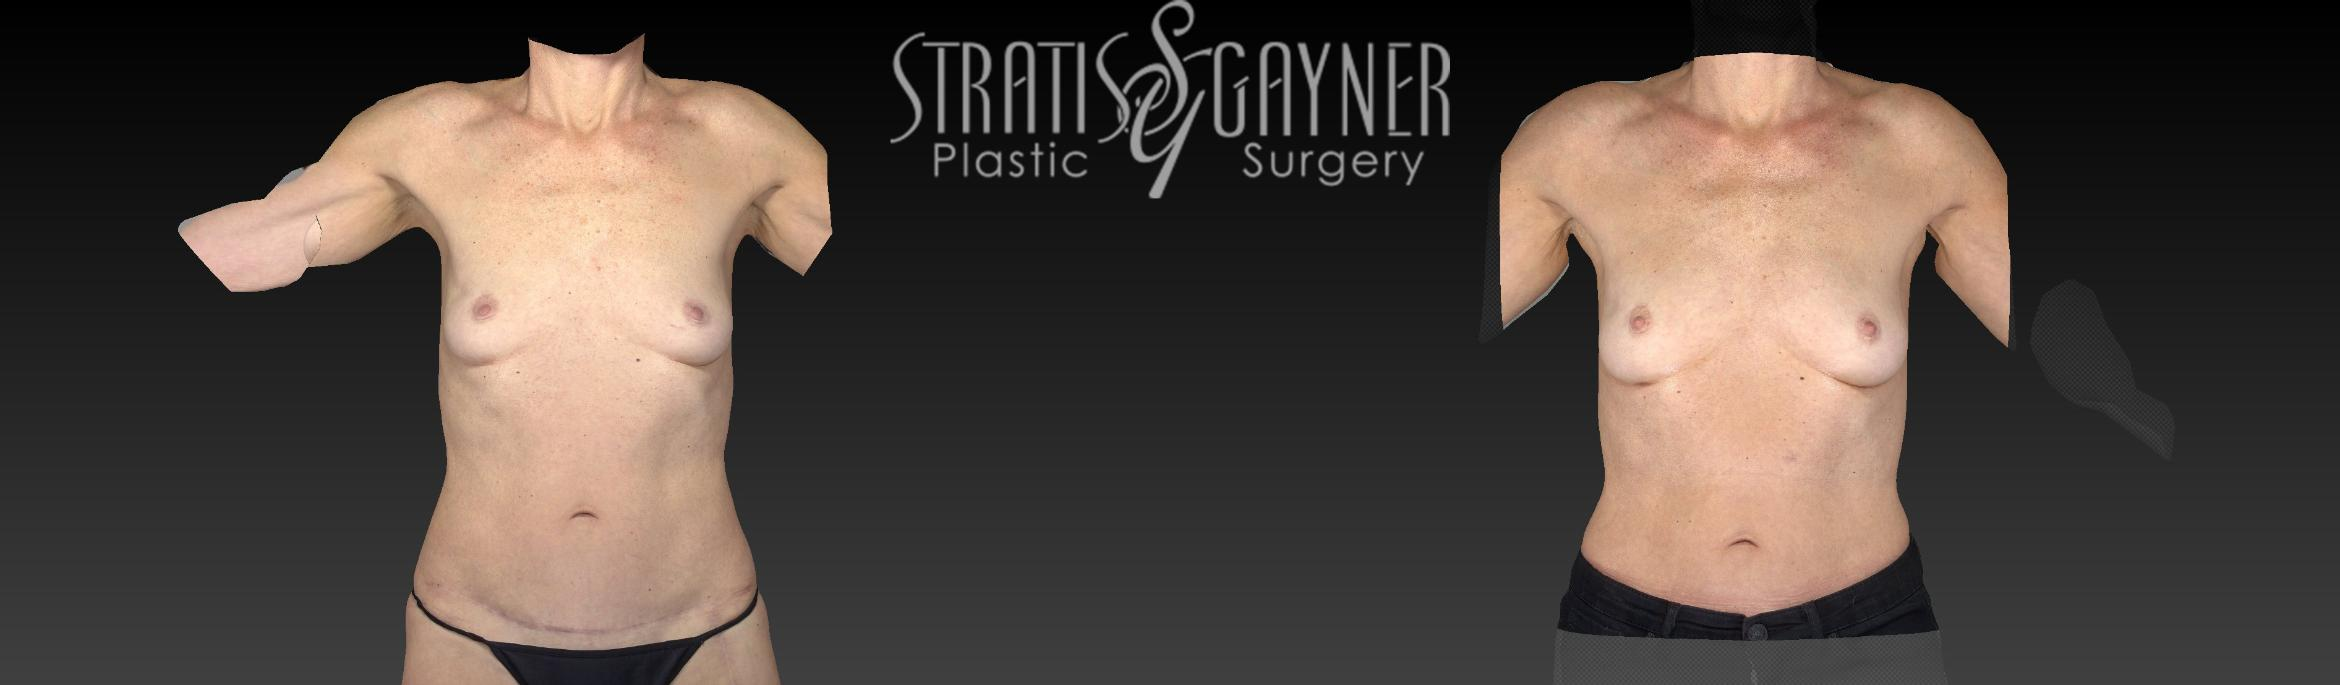 Fat Transfer to Breast Case 169 Before & After View #1 | Harrisburg, PA | Stratis Gayner Plastic Surgery